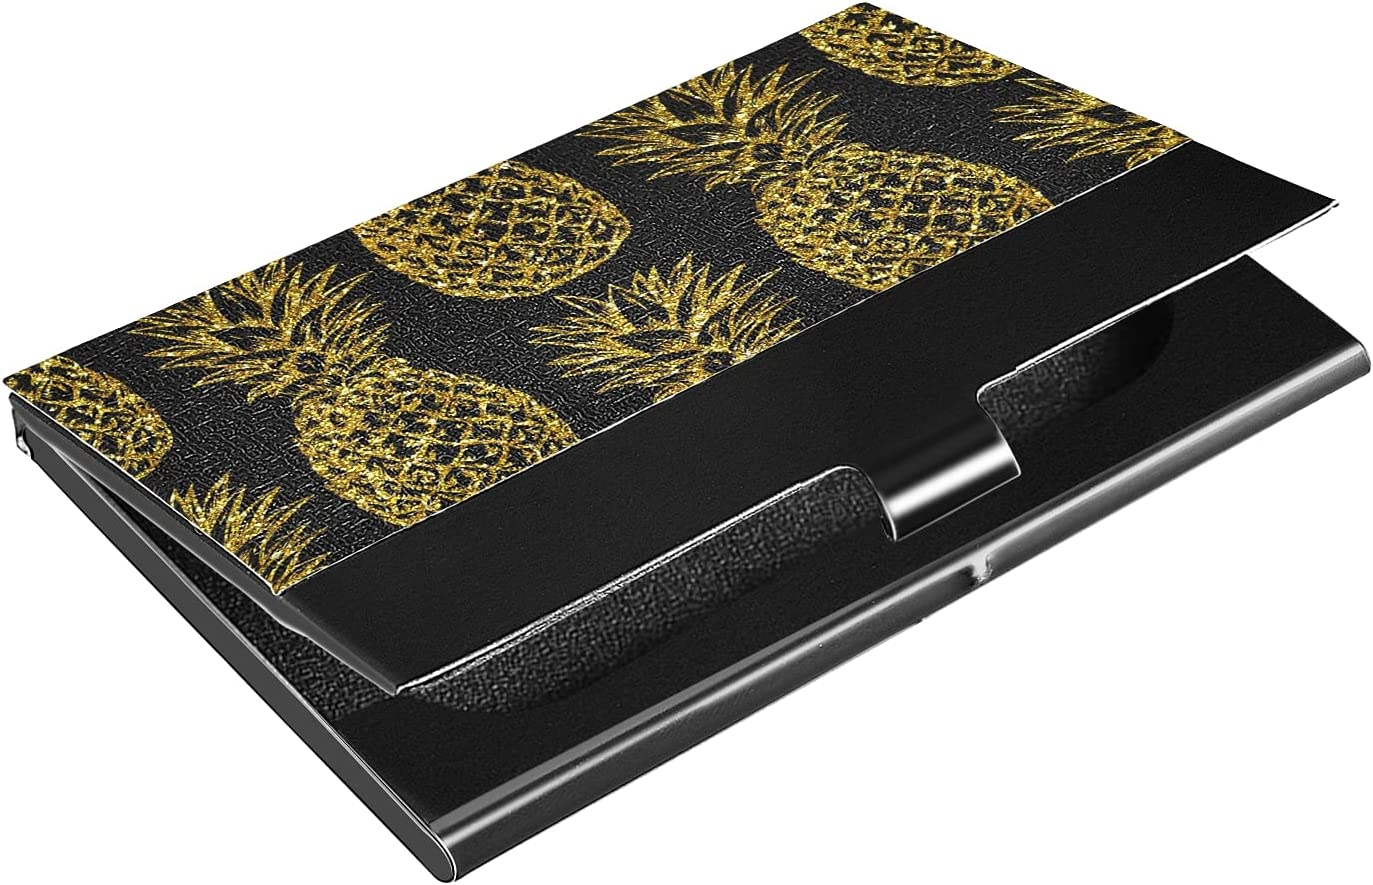 OTVEE Gold Pineapples Business Card Holder Wallet Stainless Steel & Leather Pocket Business Card Case Organizer Slim Name Card ID Card Holders Credit Card Wallet Carrier Purse for Women Men